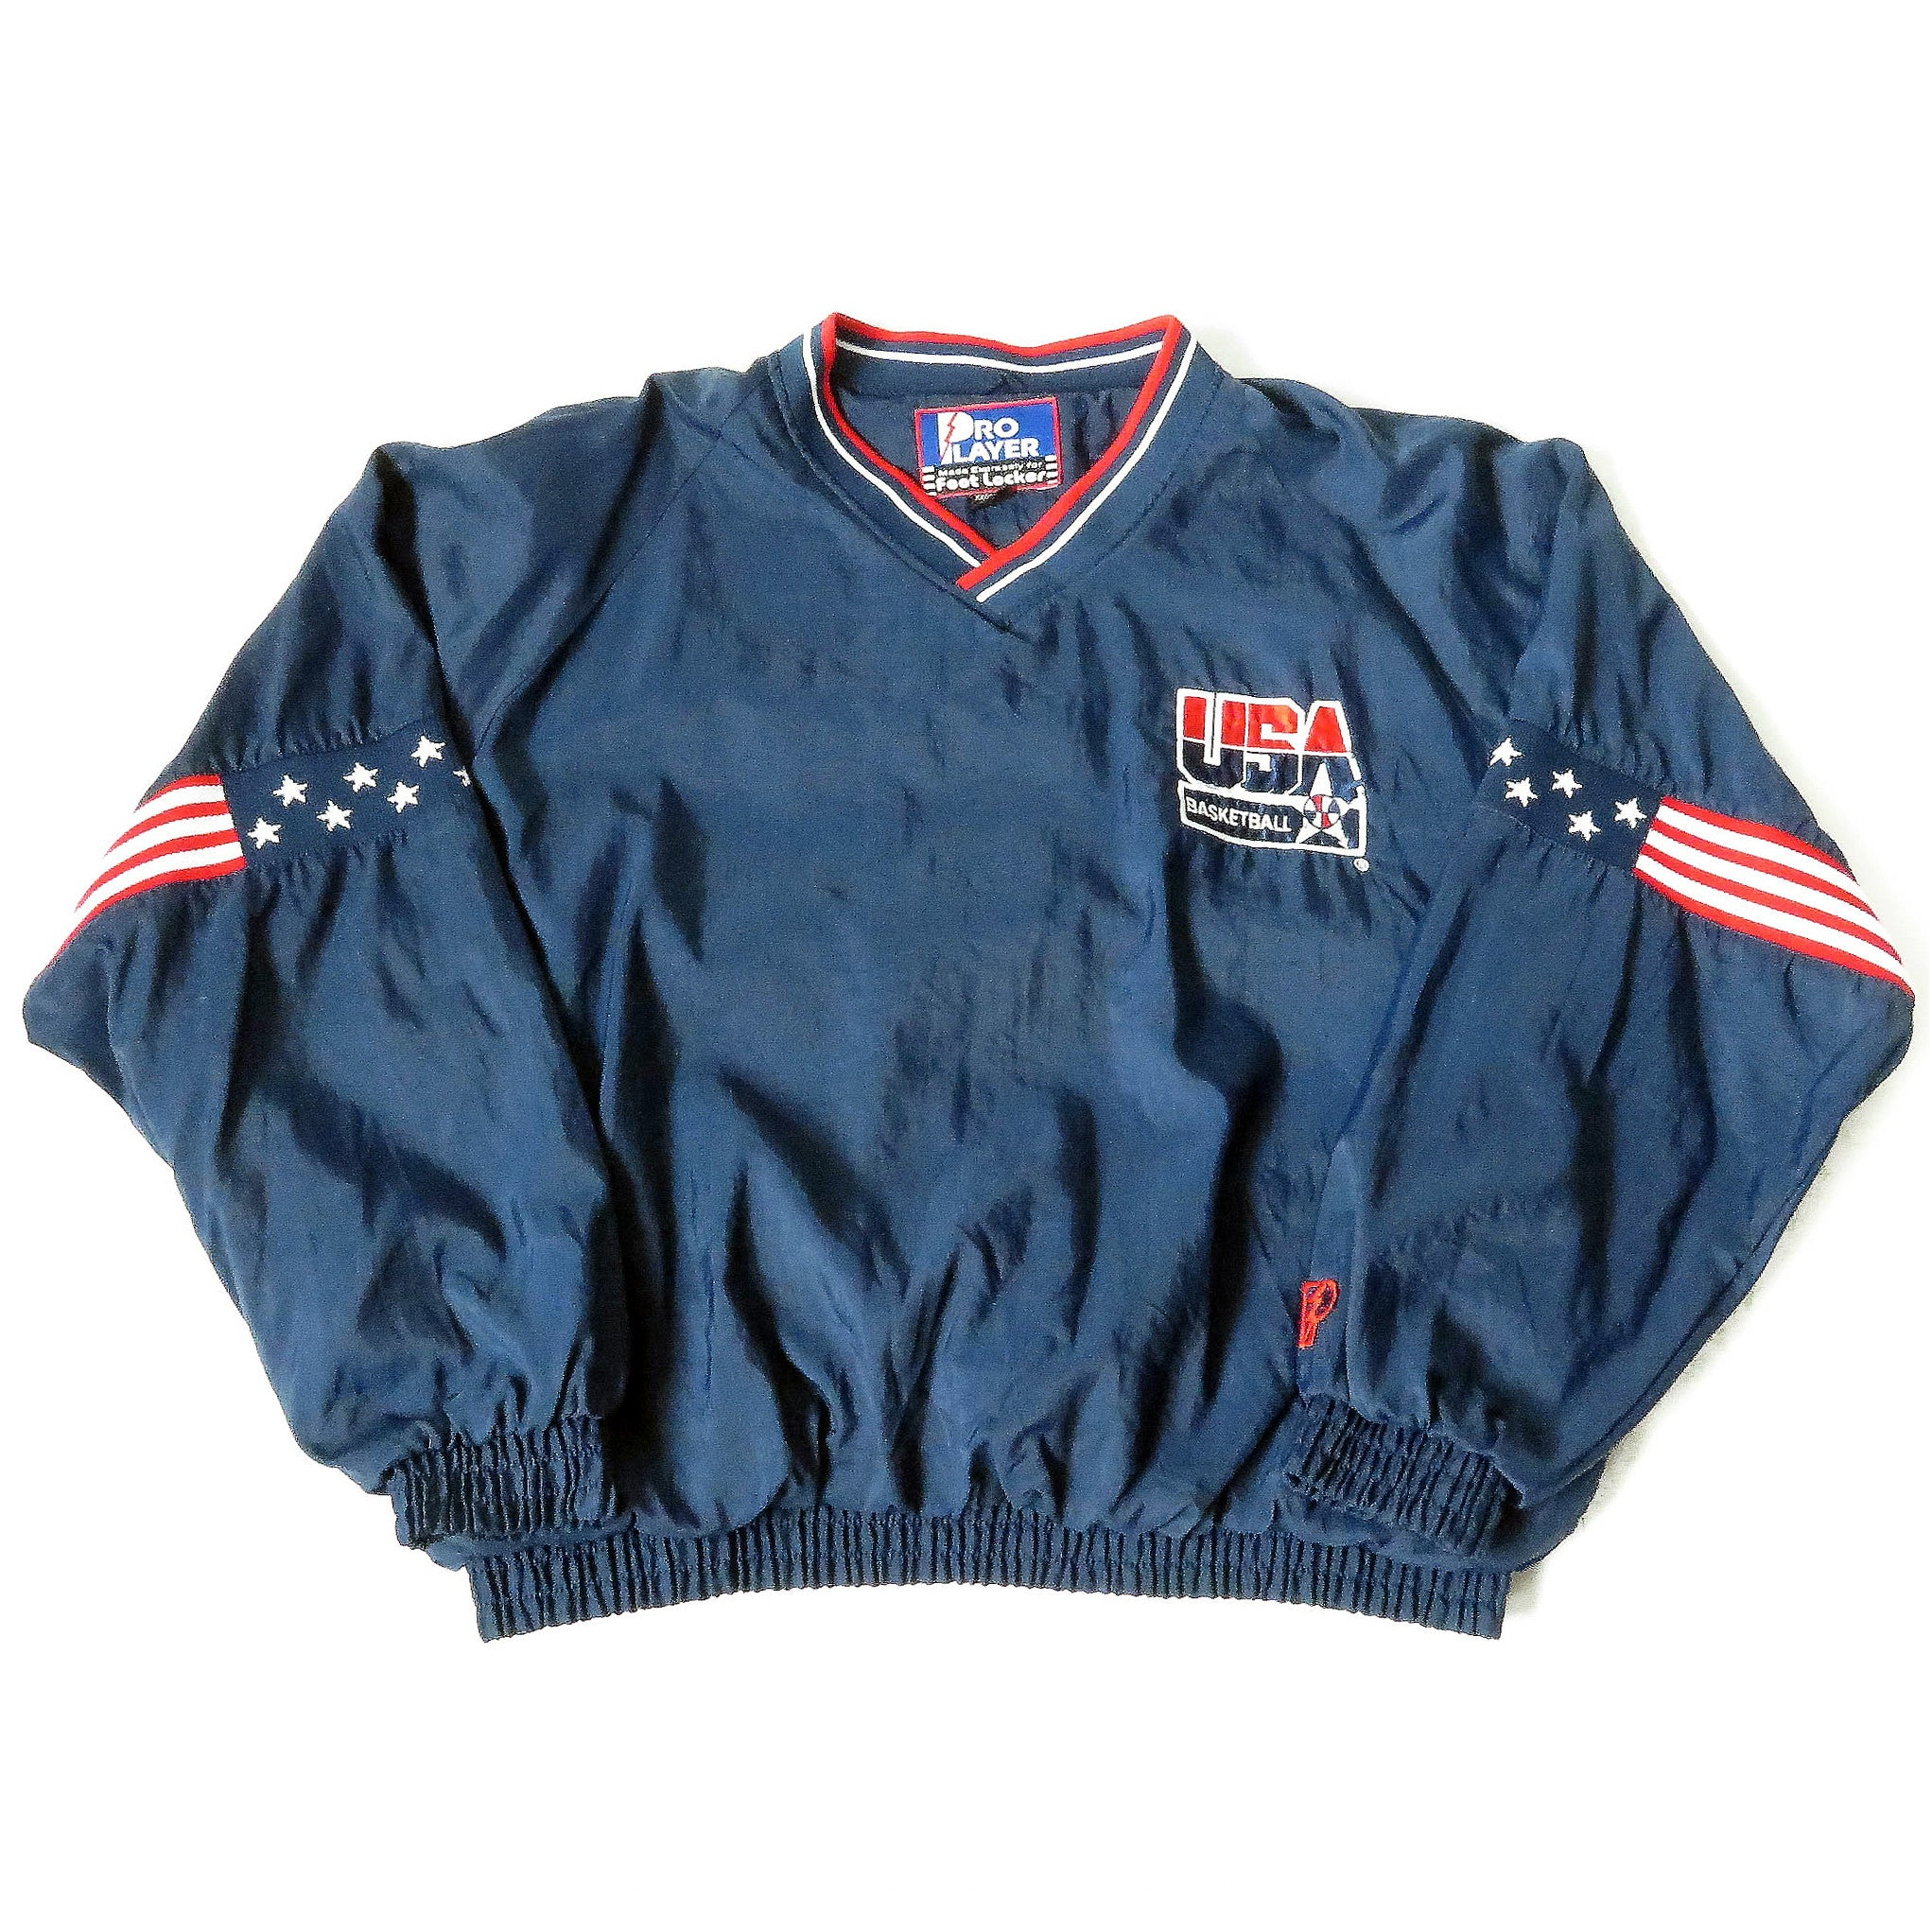 Vintage USA Basketball Pro Player Pullover Jacket Sz 2XL